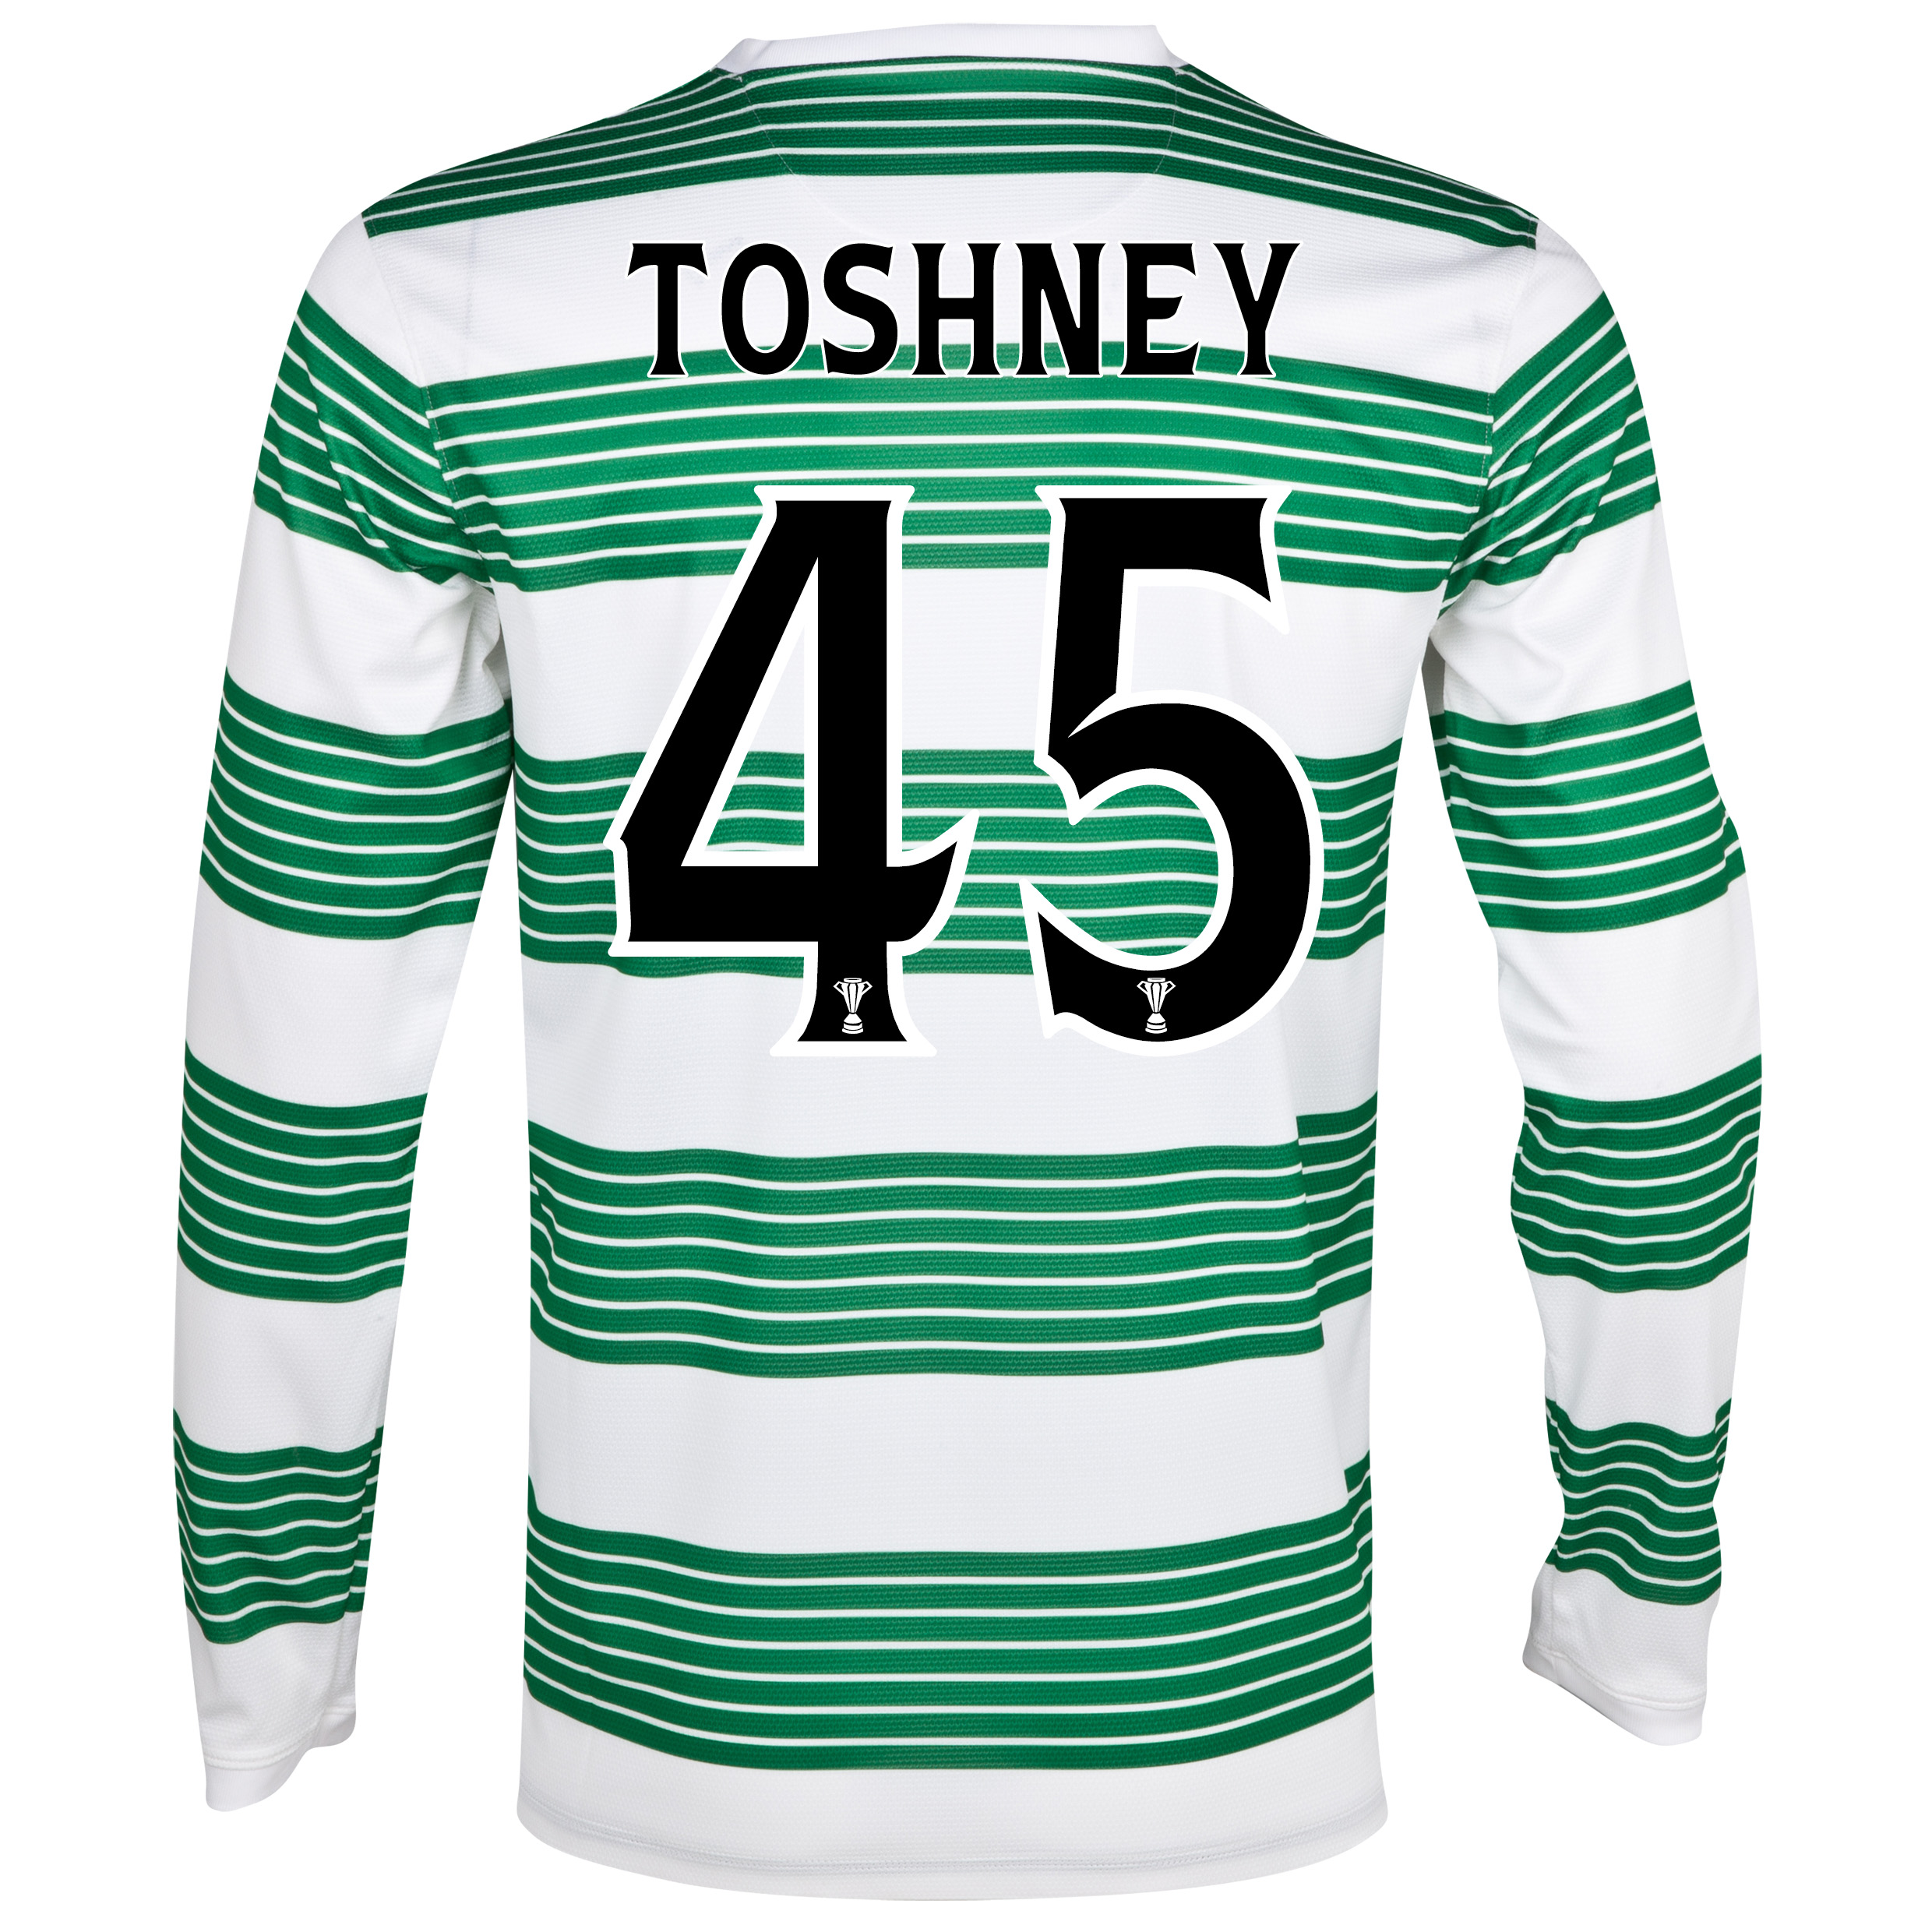 Celtic Home Shirt 2013/15 - L/S- With Sponsor with Toshney 45 printing